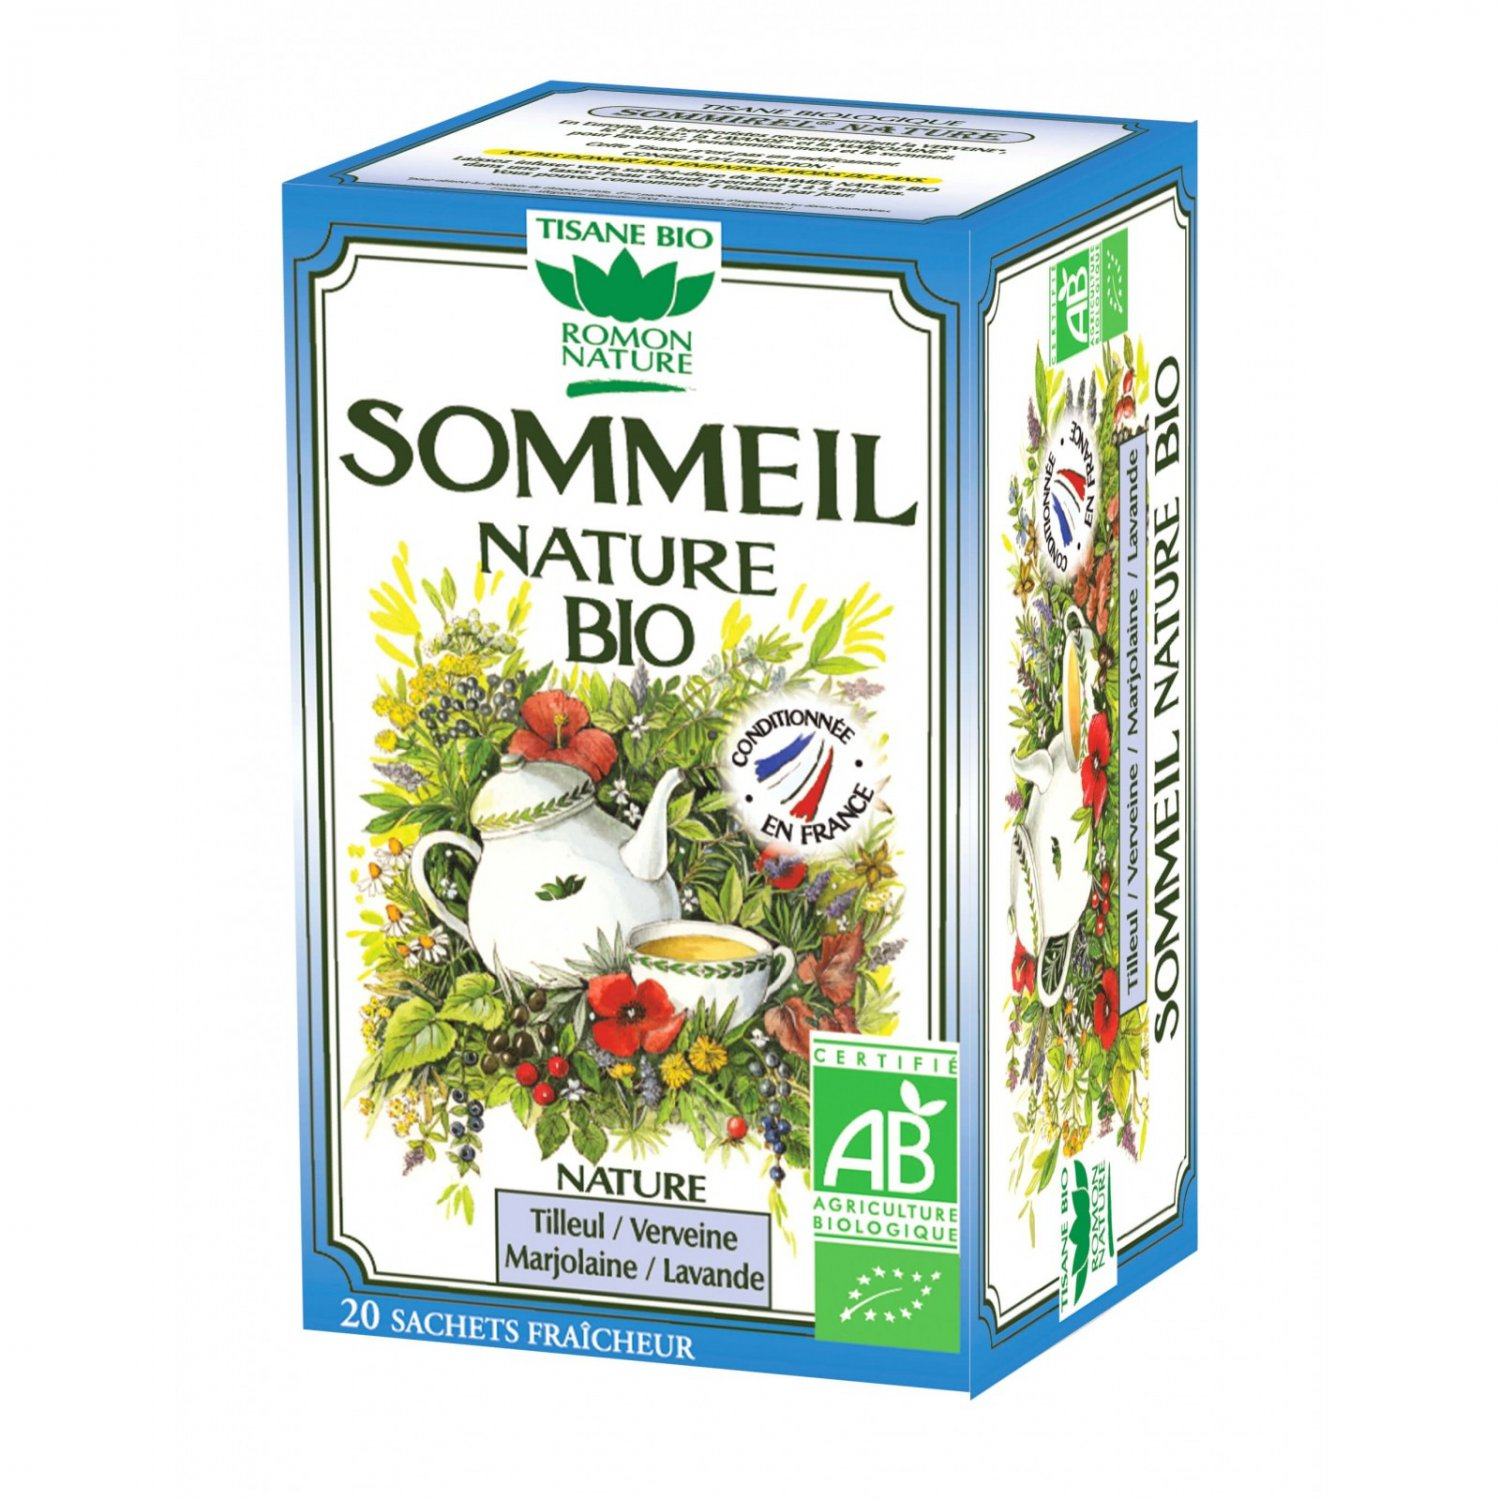 Romon Nature Tisane Sleep Sommeil Herbal tea 20 sachets